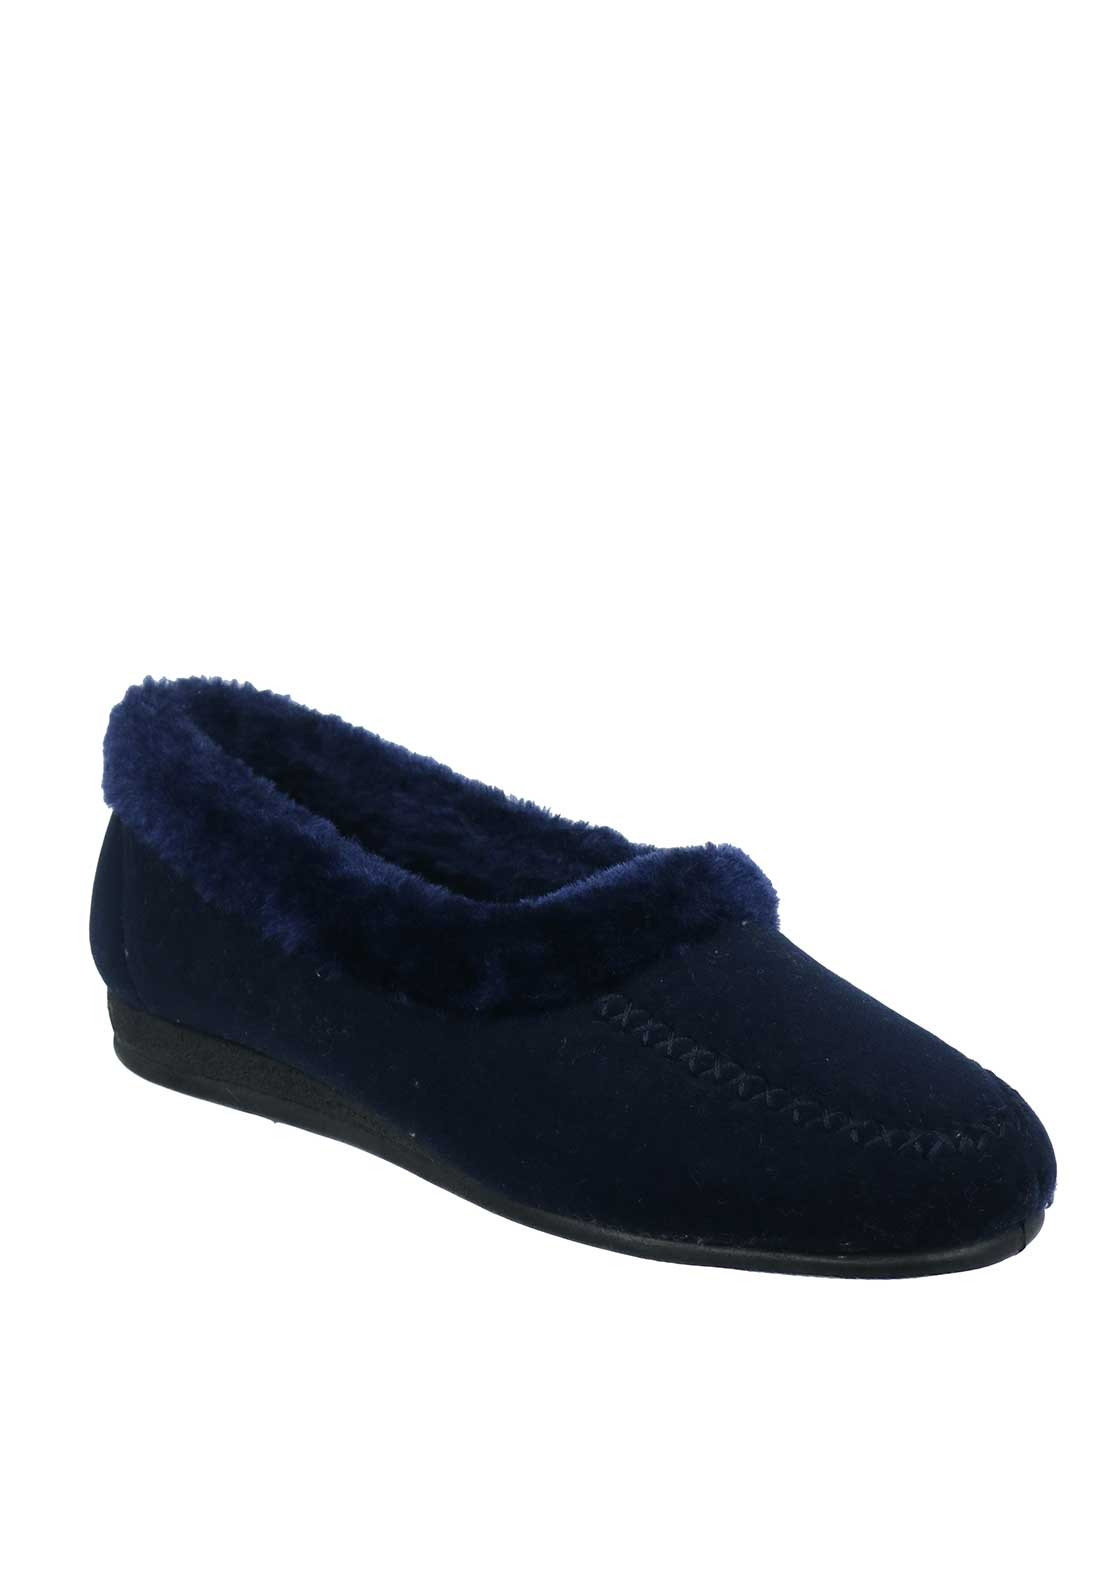 Lunar Womens Earl Moccasin Slippers, Navy